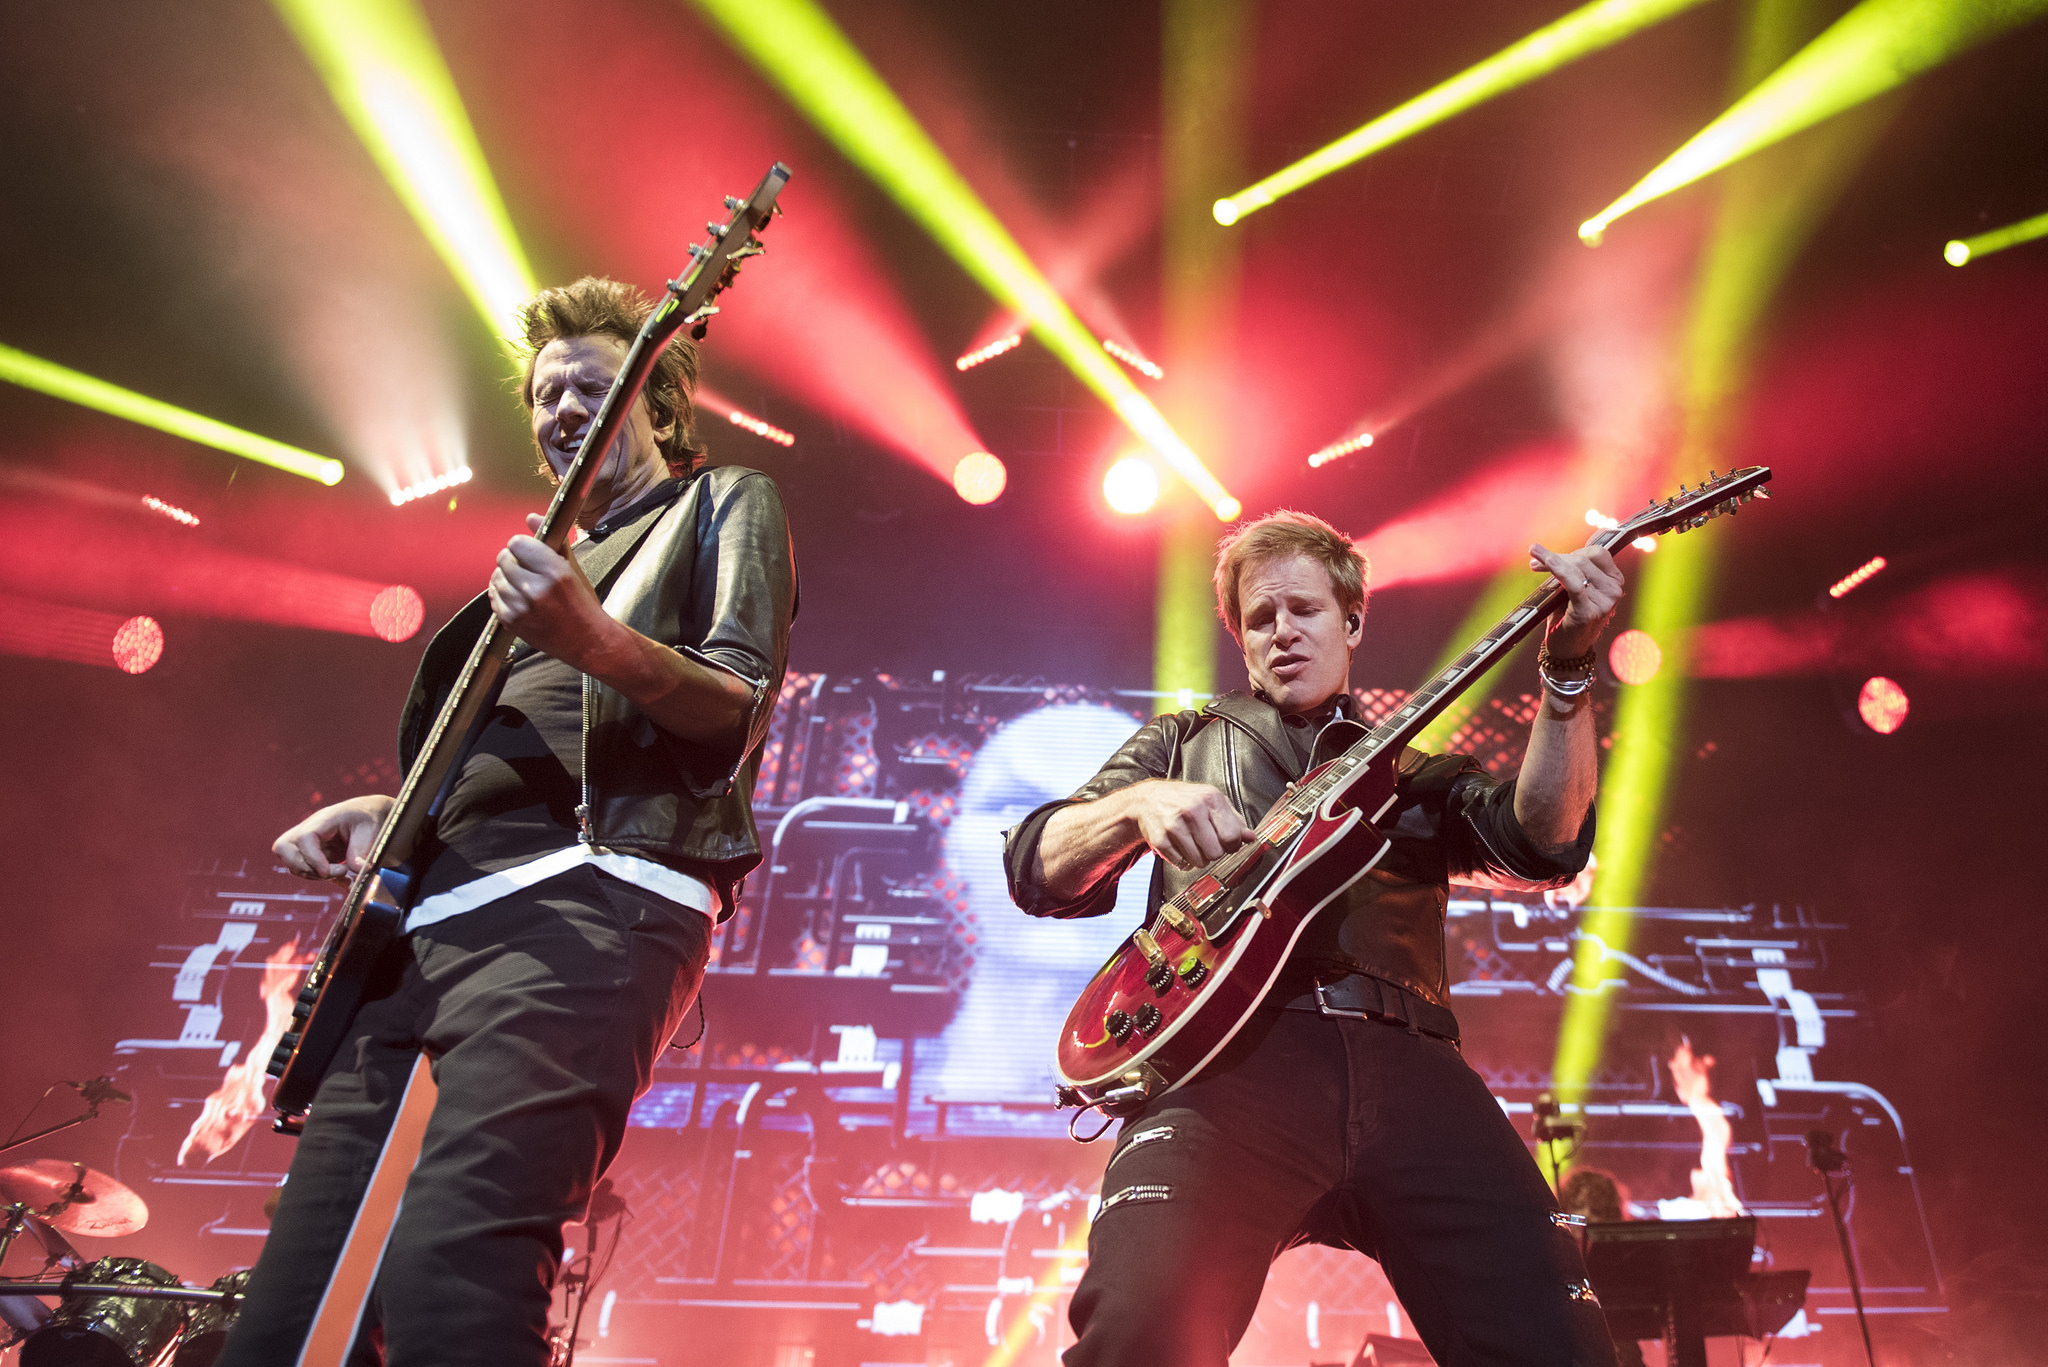 John Taylor, left, and Dominic Brown perform with Duran Duran at Mandalay Bay Events Center in Las Vegas Friday, July 29, 2016. Jason Ogulnik/Las Vegas Review-Journal